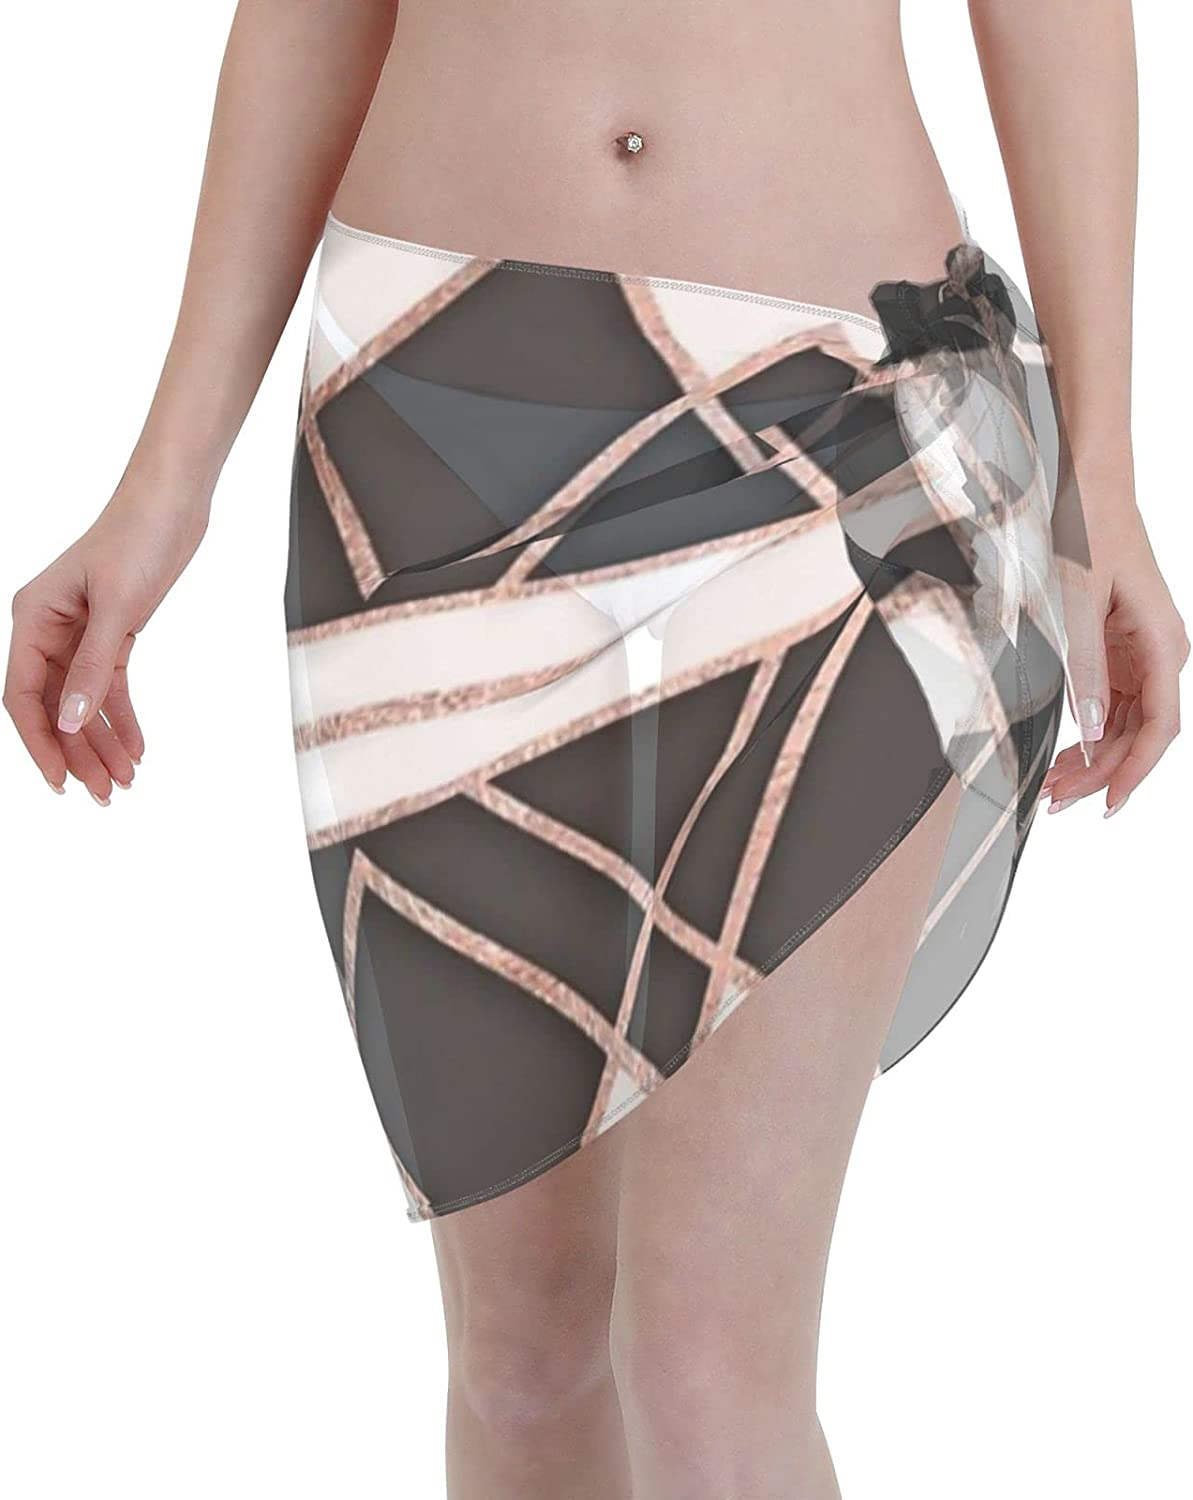 2053 pants Modern Chic Rose Gold Black and White Triangles Women Chiffon Beach Cover ups Beach Swimsuit Wrap Skirt wrap Bathing Suits for Women